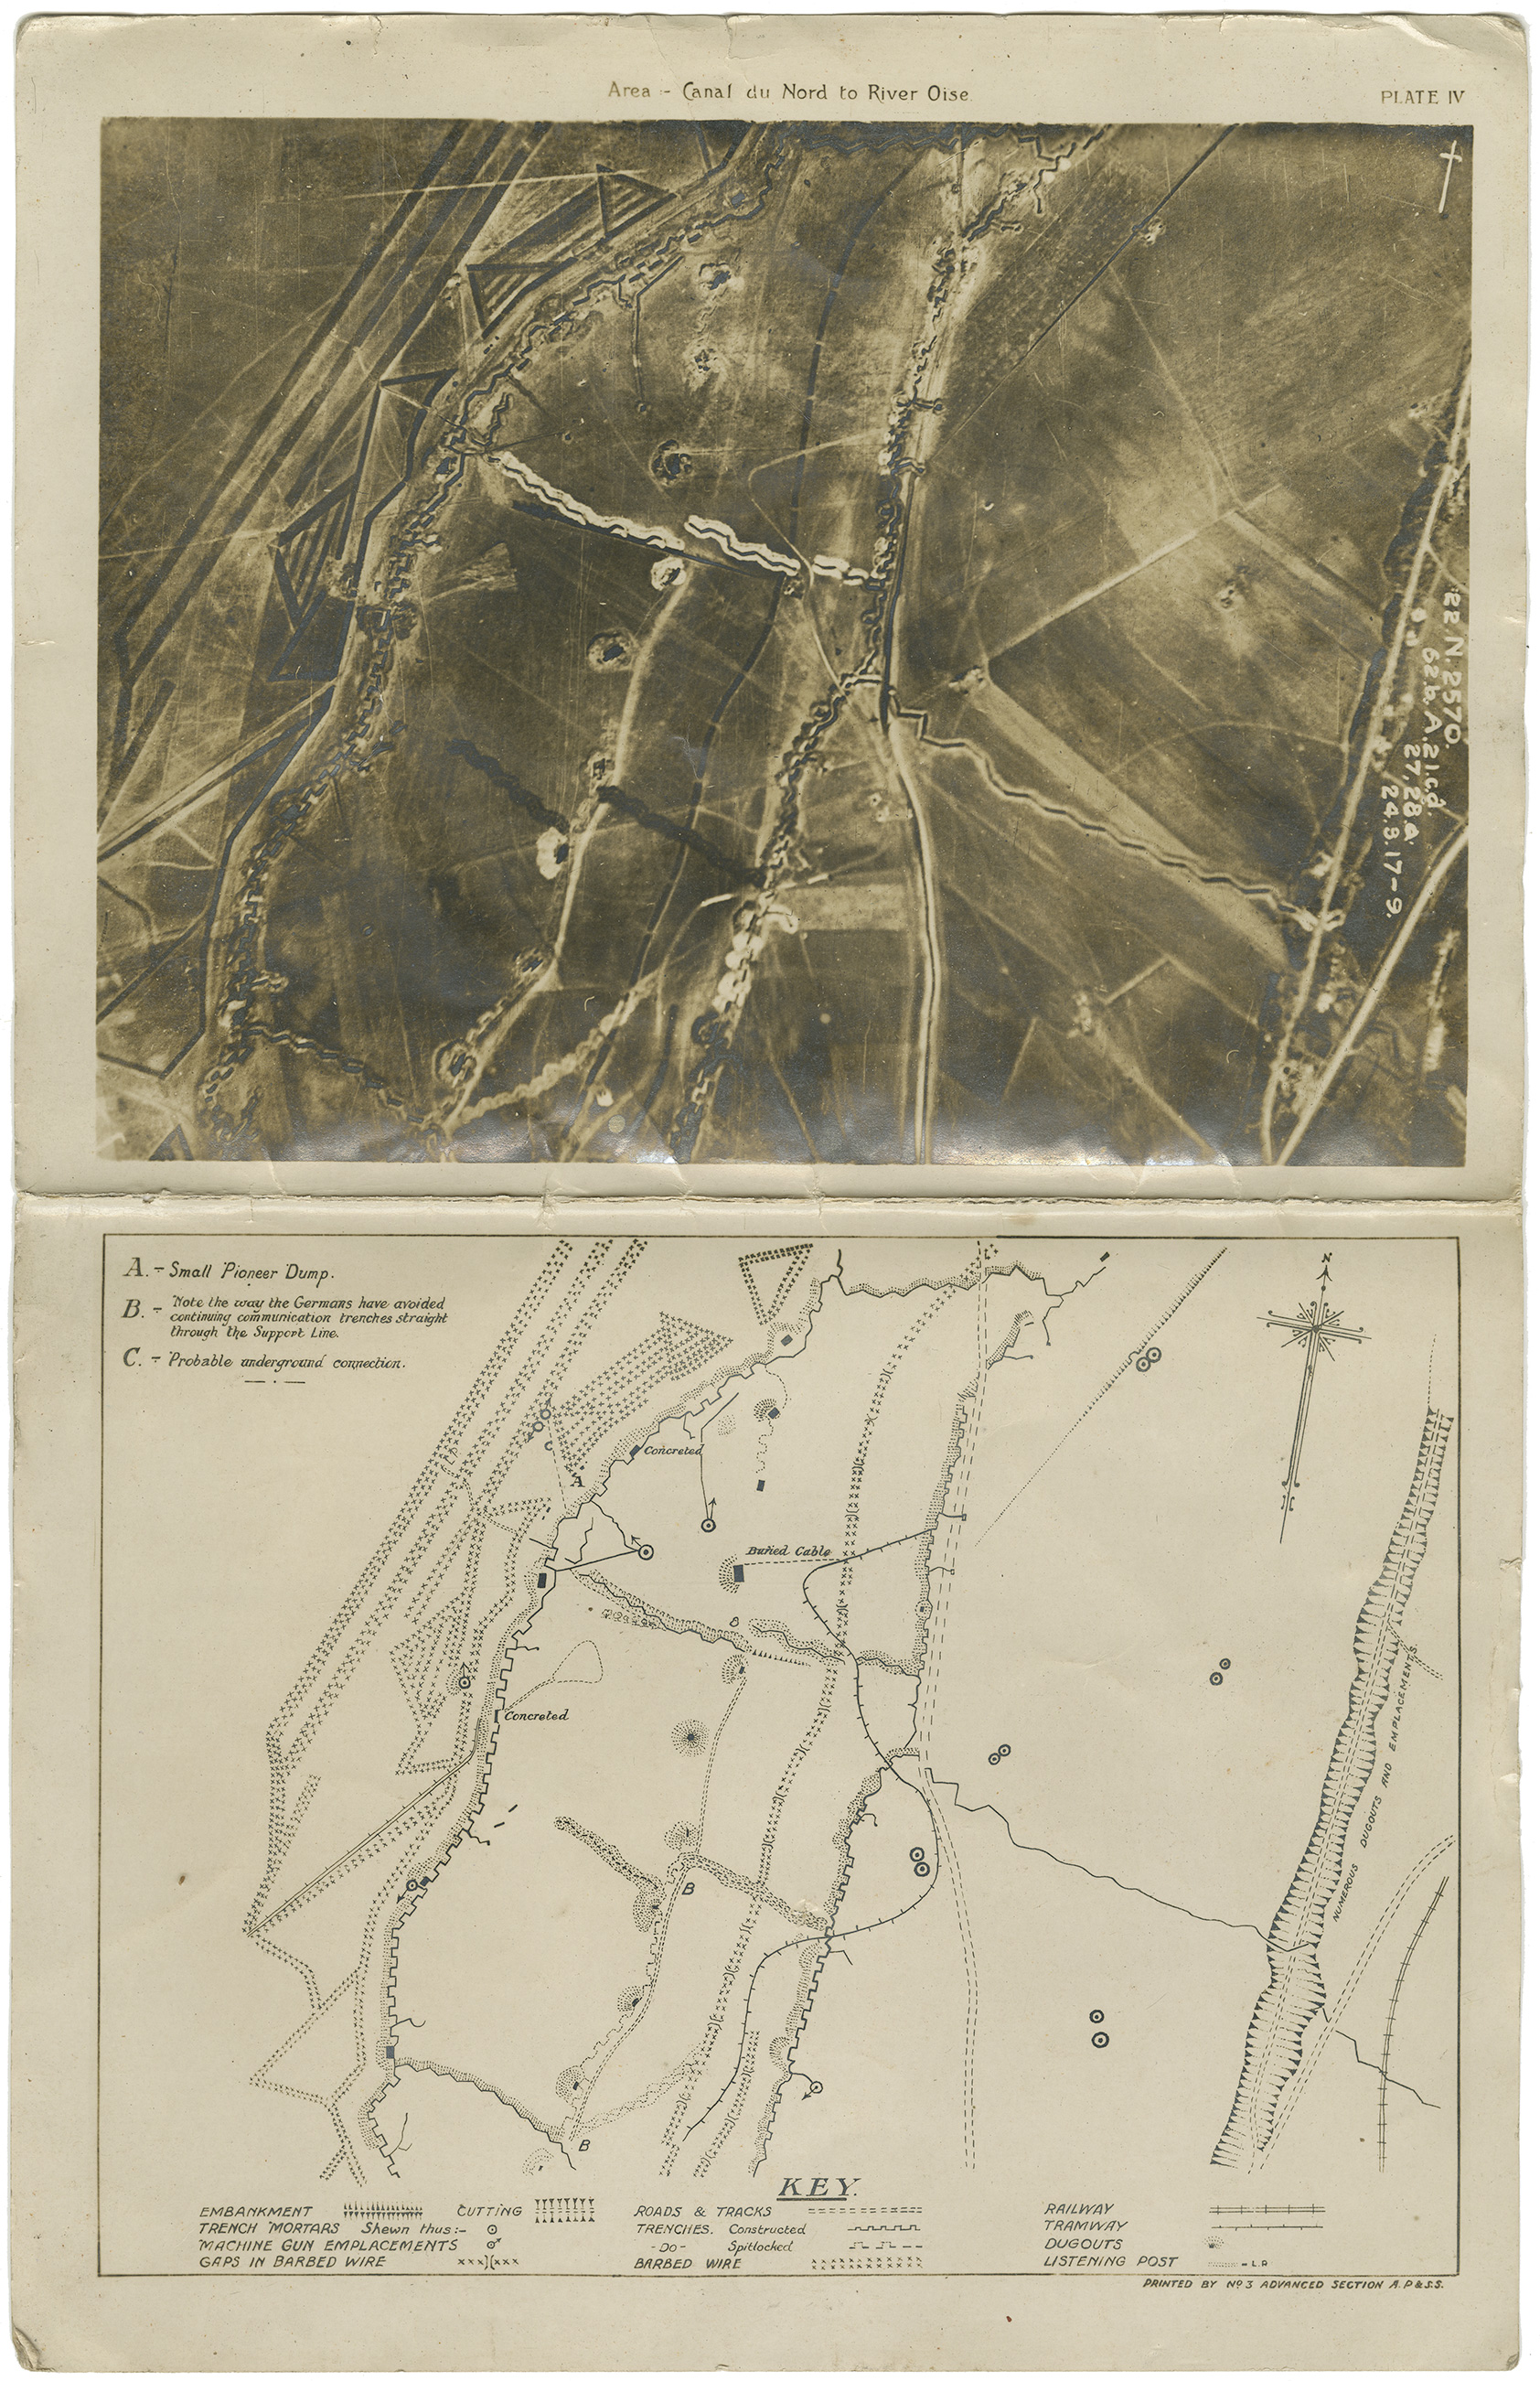 Map with key and photo of Area - Canal du Nord to River Oise